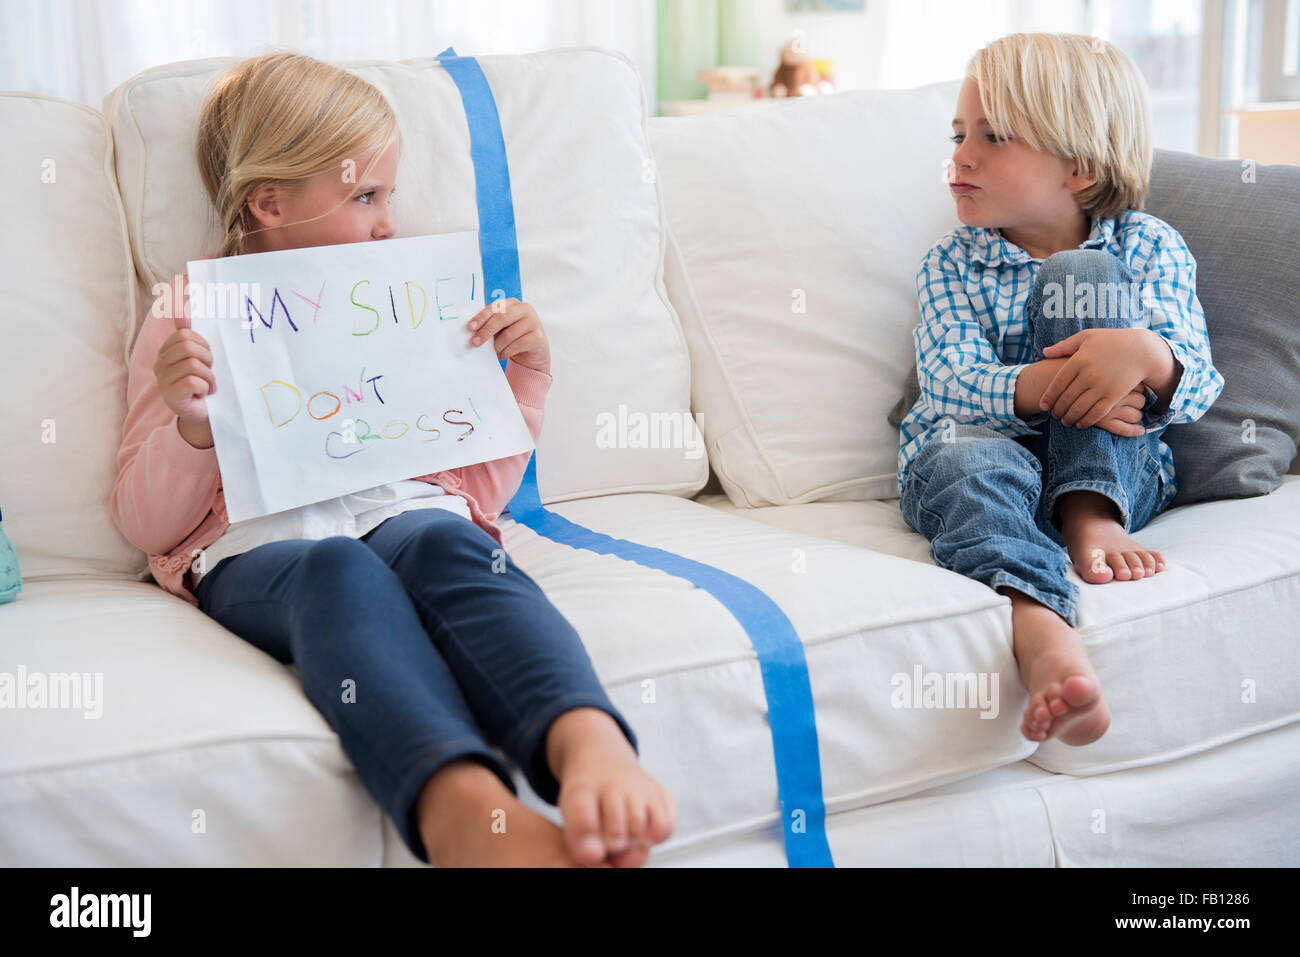 Boy (4-5) sitting on sofa with girl (6-7) holding paper - Stock Image